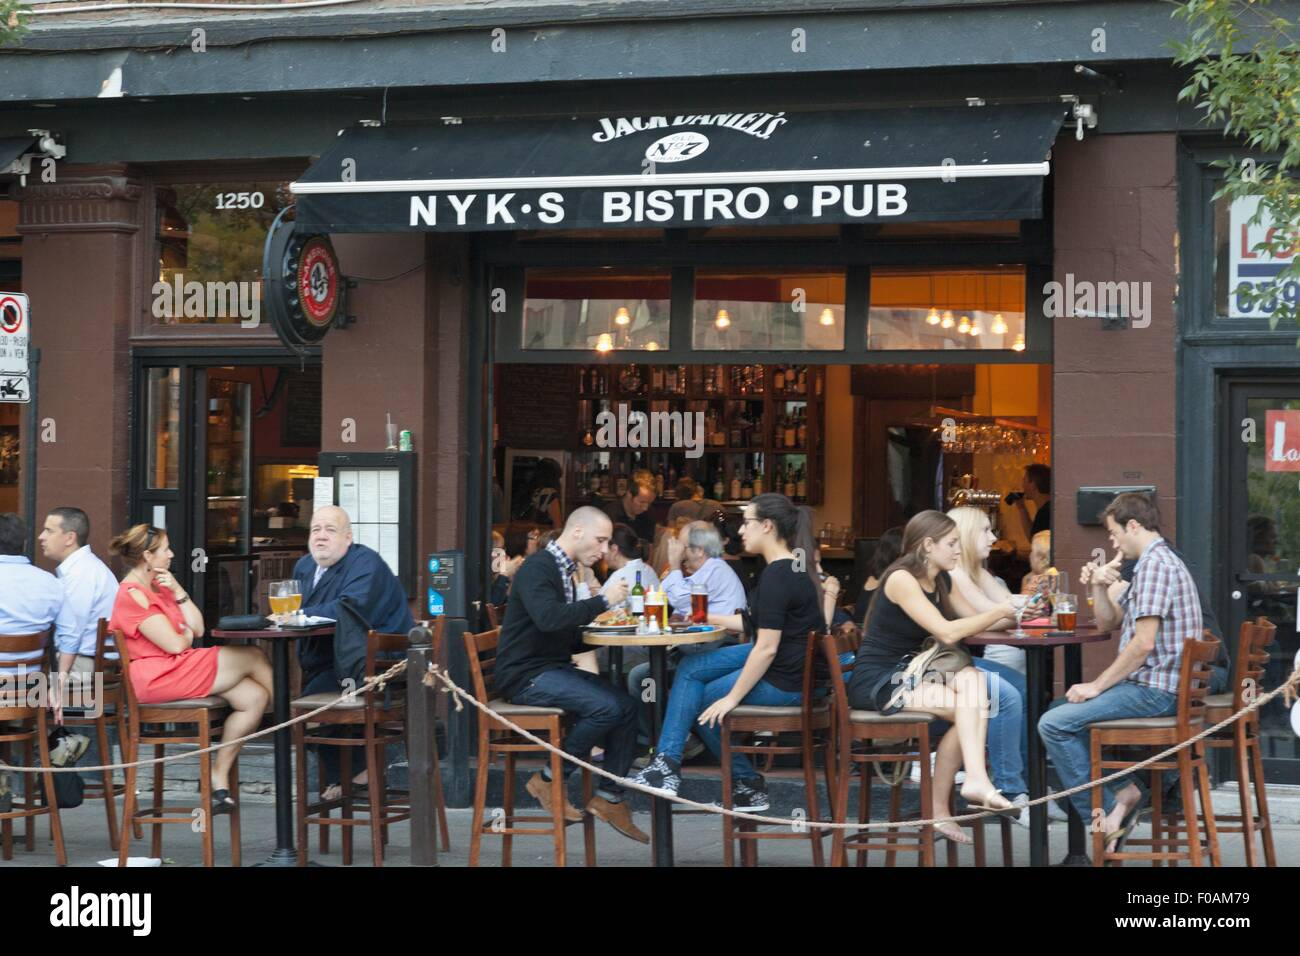 People sitting in front of NYKS Bistro and Pub, Montreal, Canada